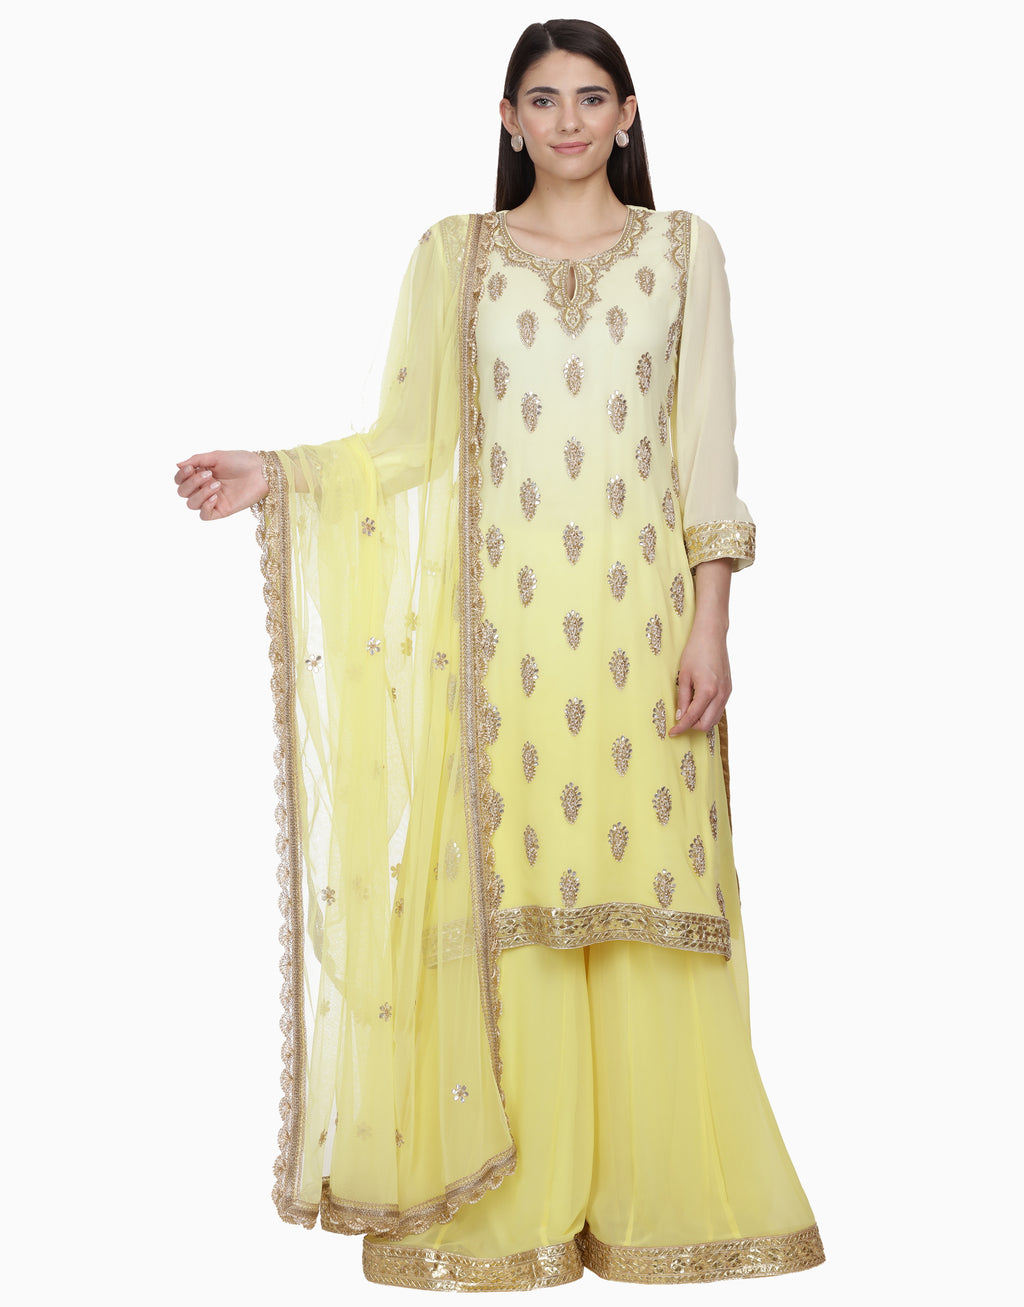 BHUMIKA GROVER LEMON OMBRE SHARARA SET